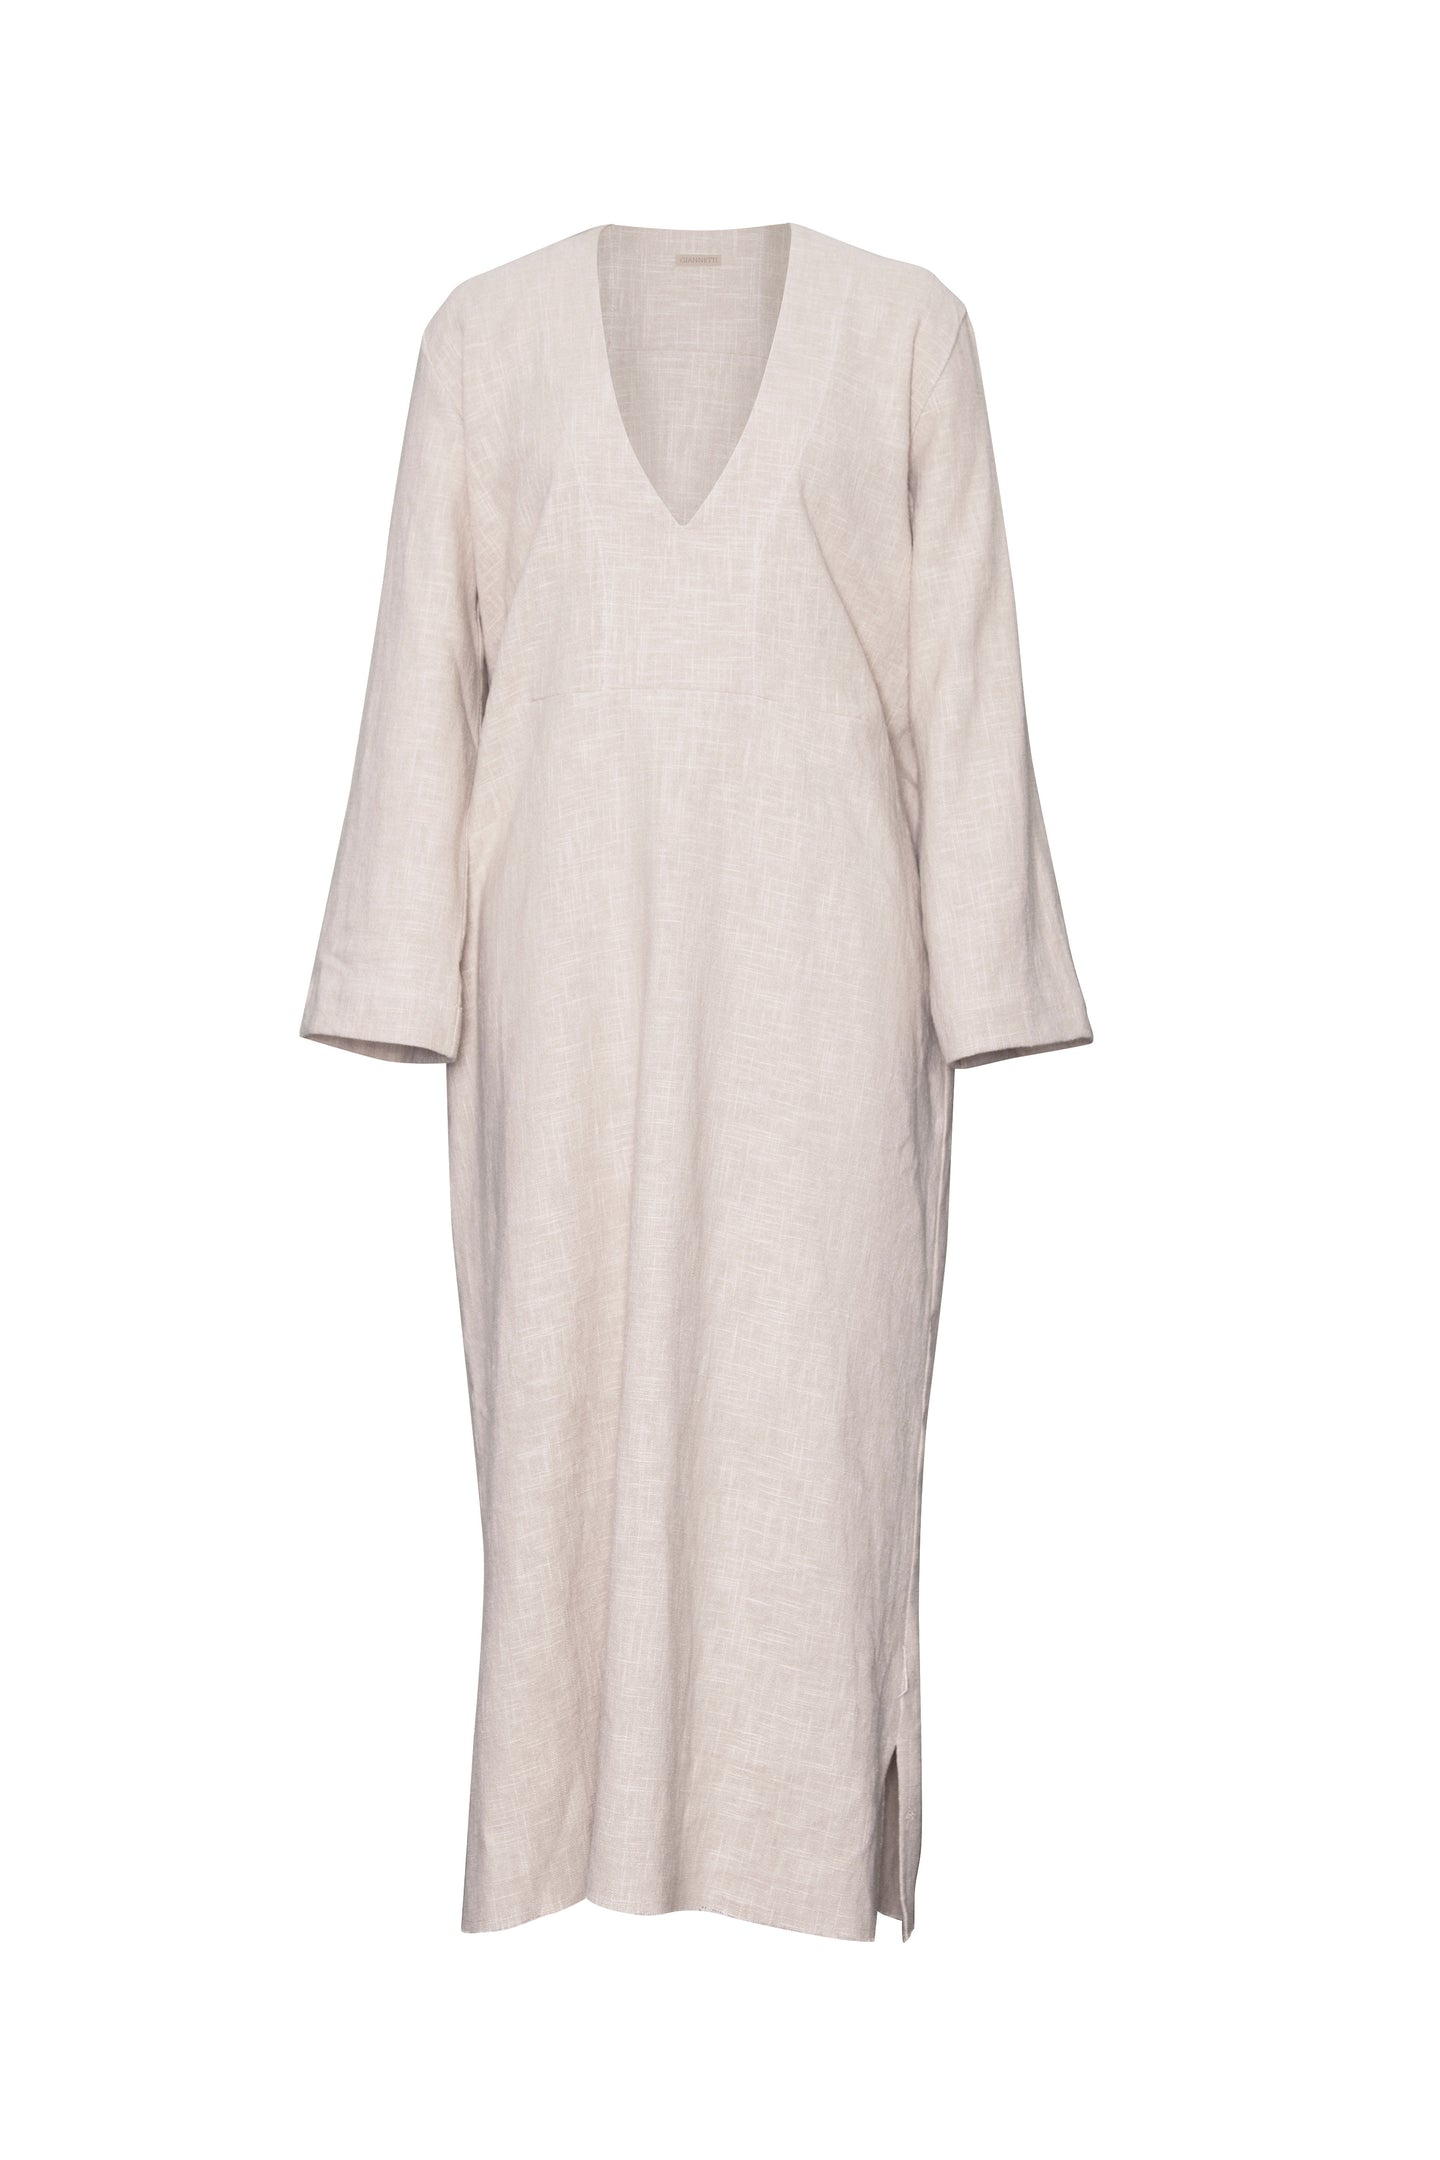 GIANNETTI NATURAL LINEN CAFTAN